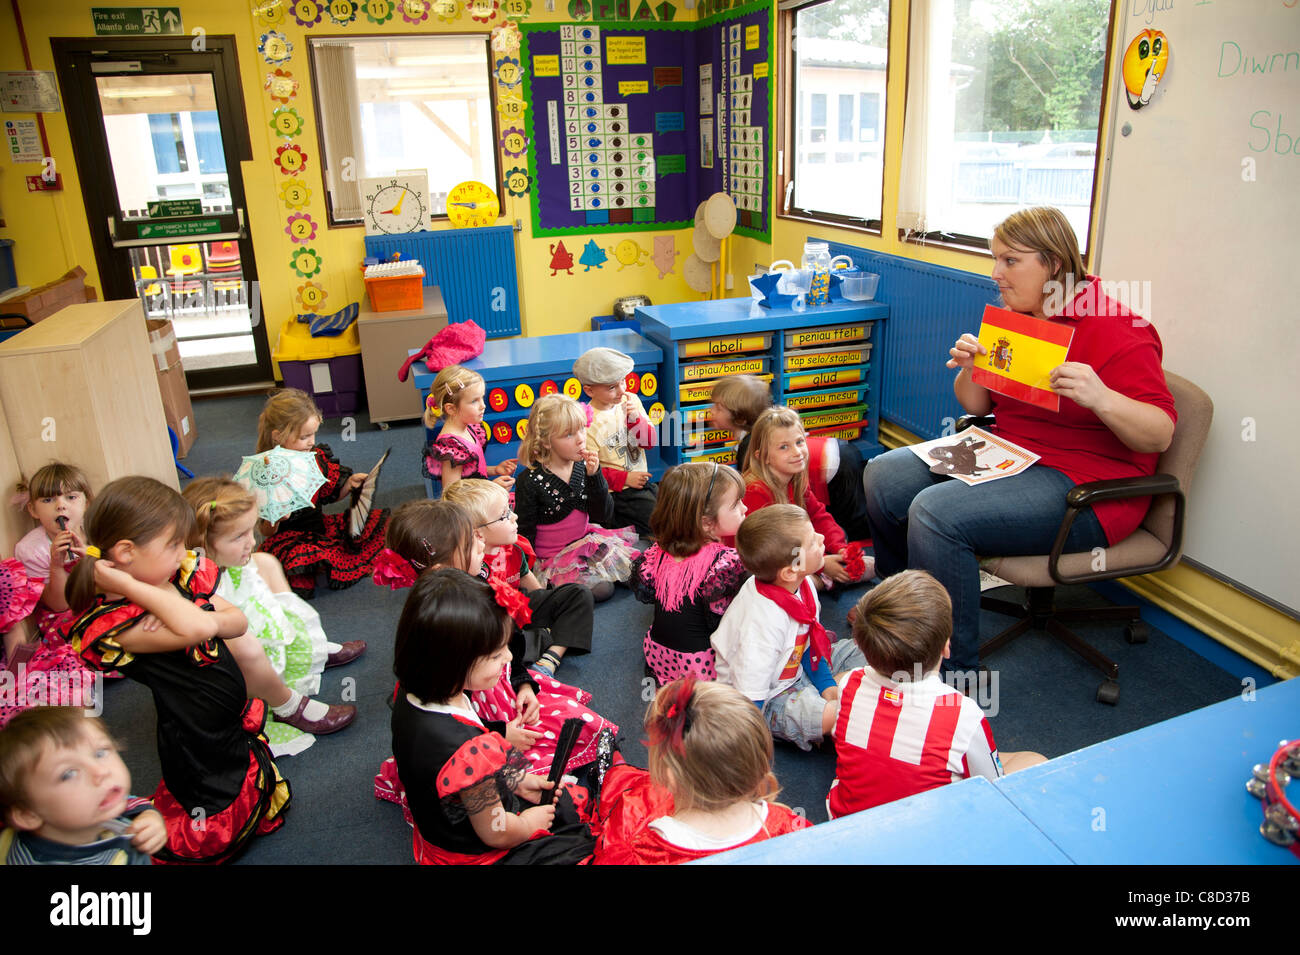 International Day - A woman teacher with children in class at a primary school talking about Spain, Wales UK - Stock Image